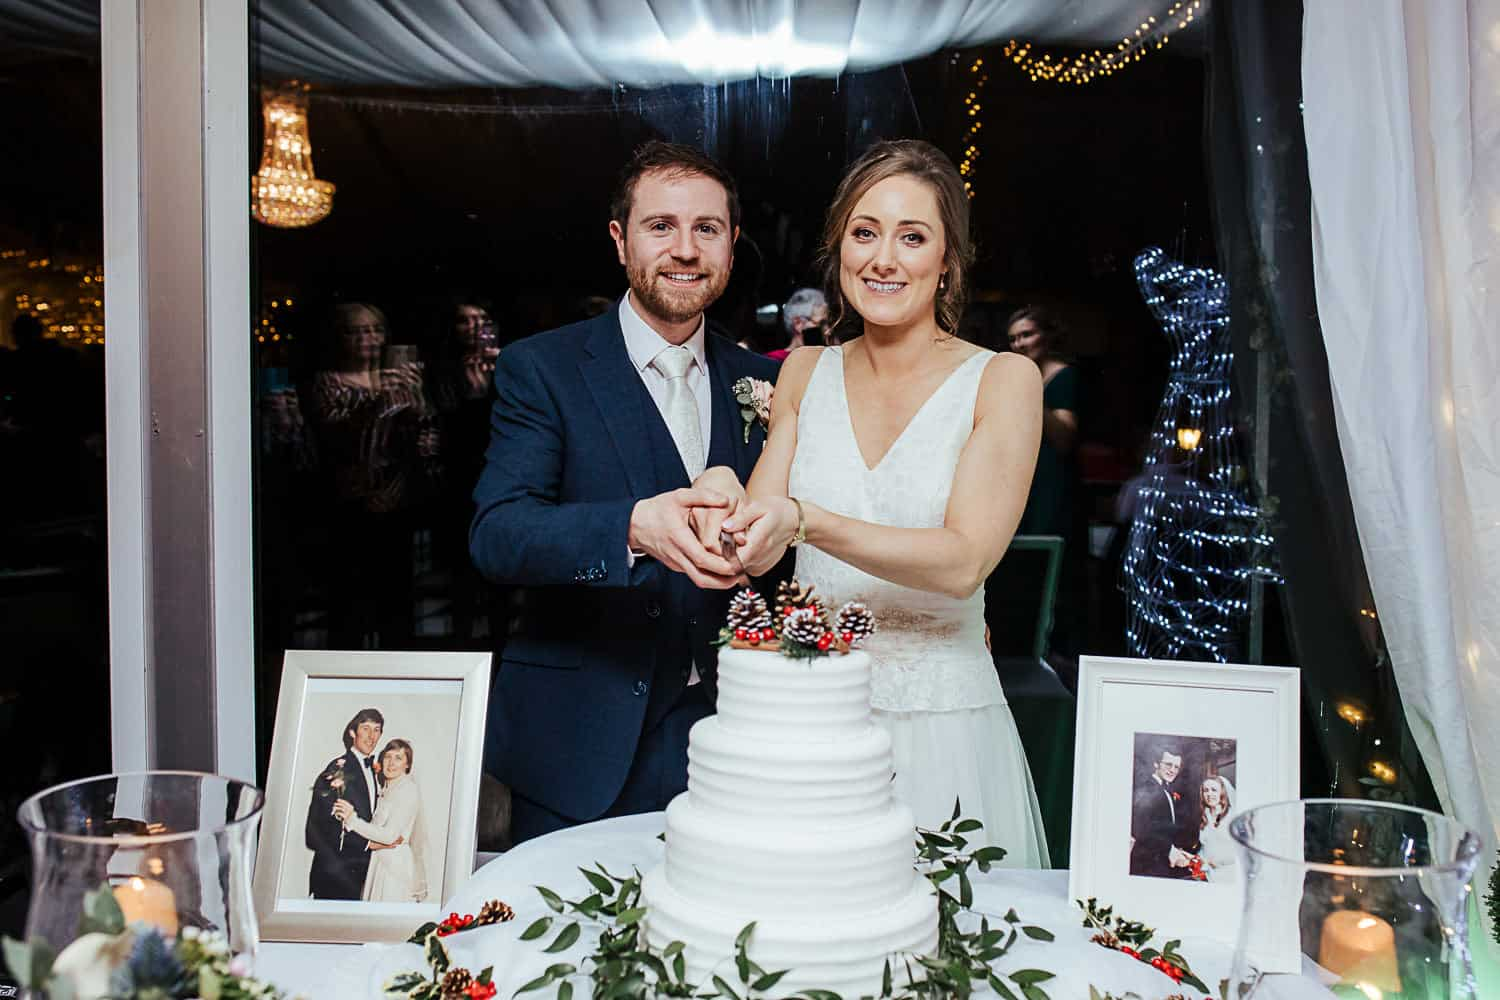 cake cutting at ashley park house wedding